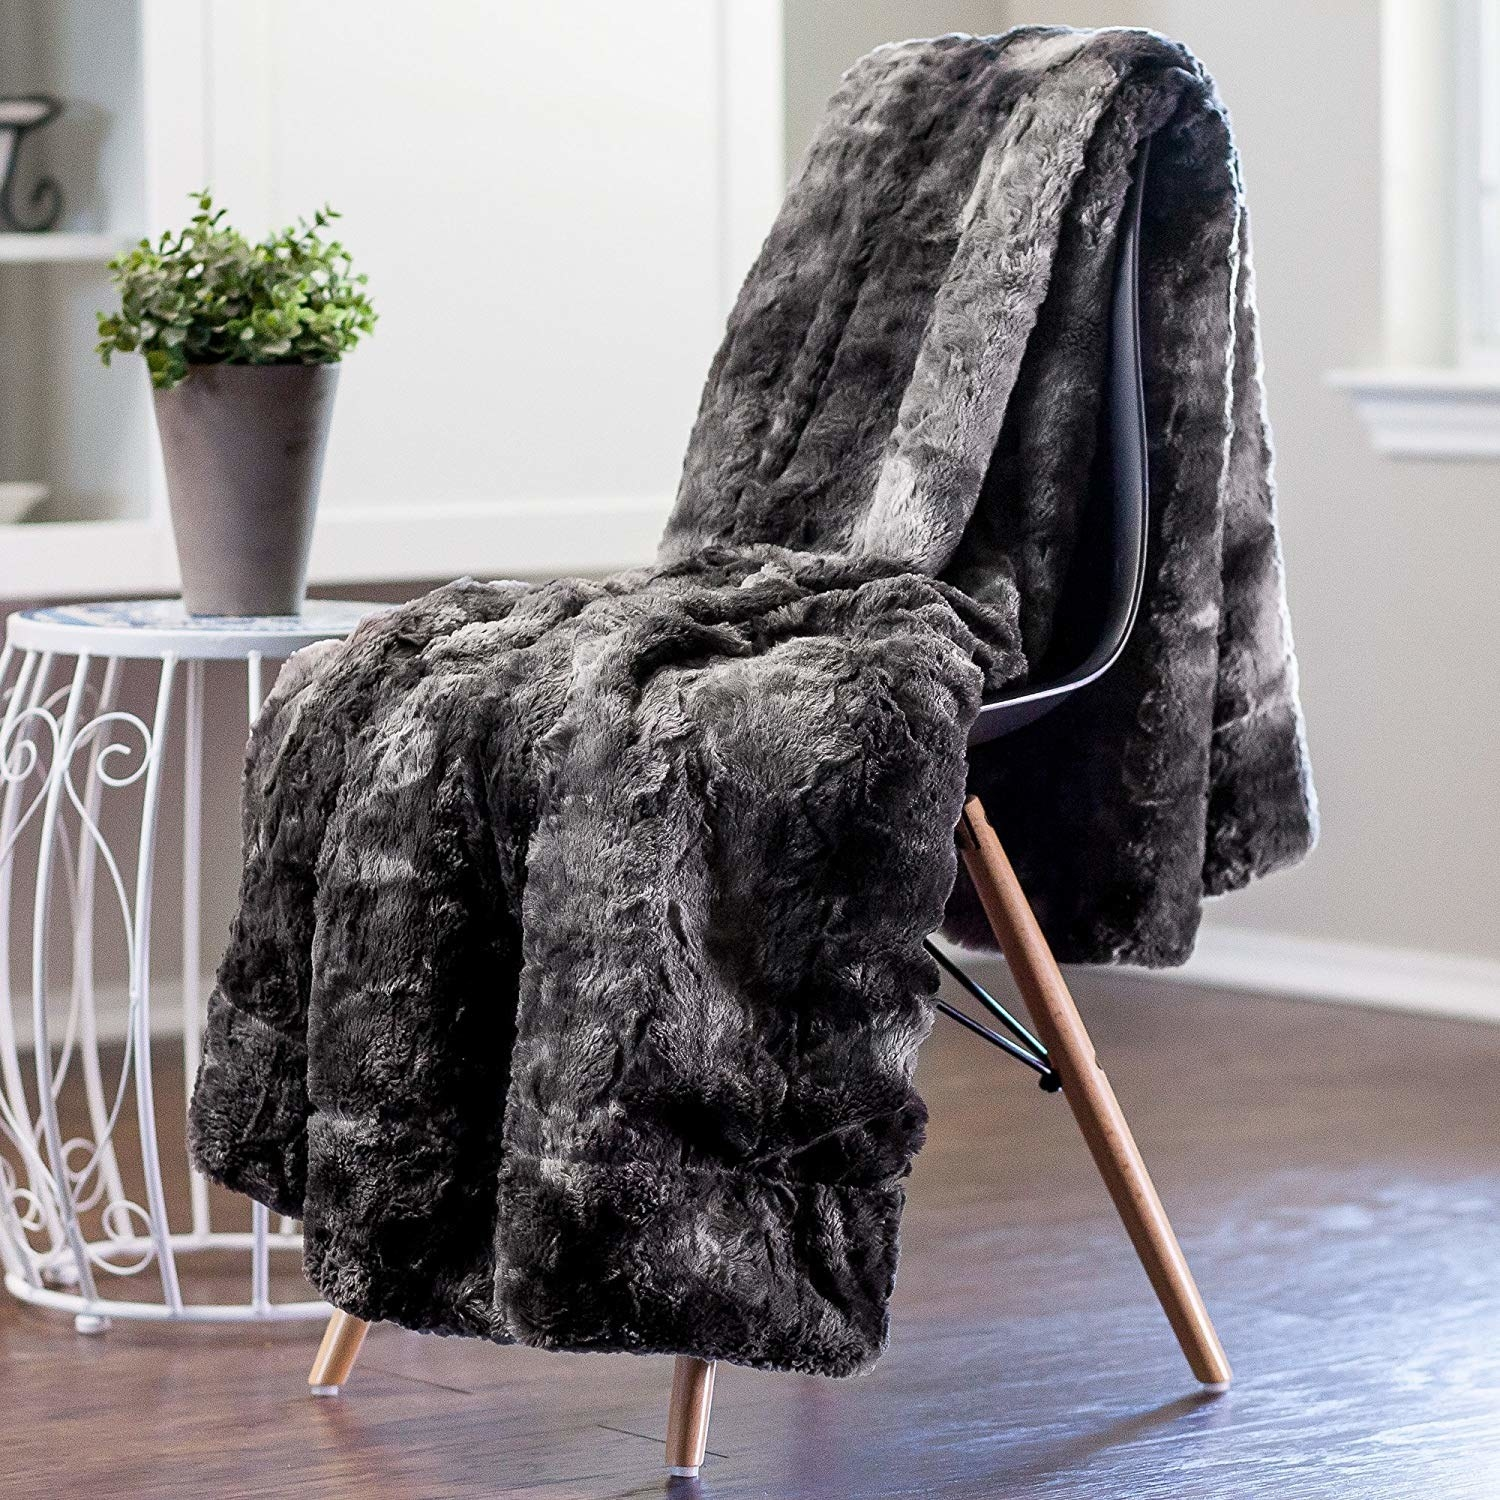 Fuzzy mottled grey throw draped over a chair